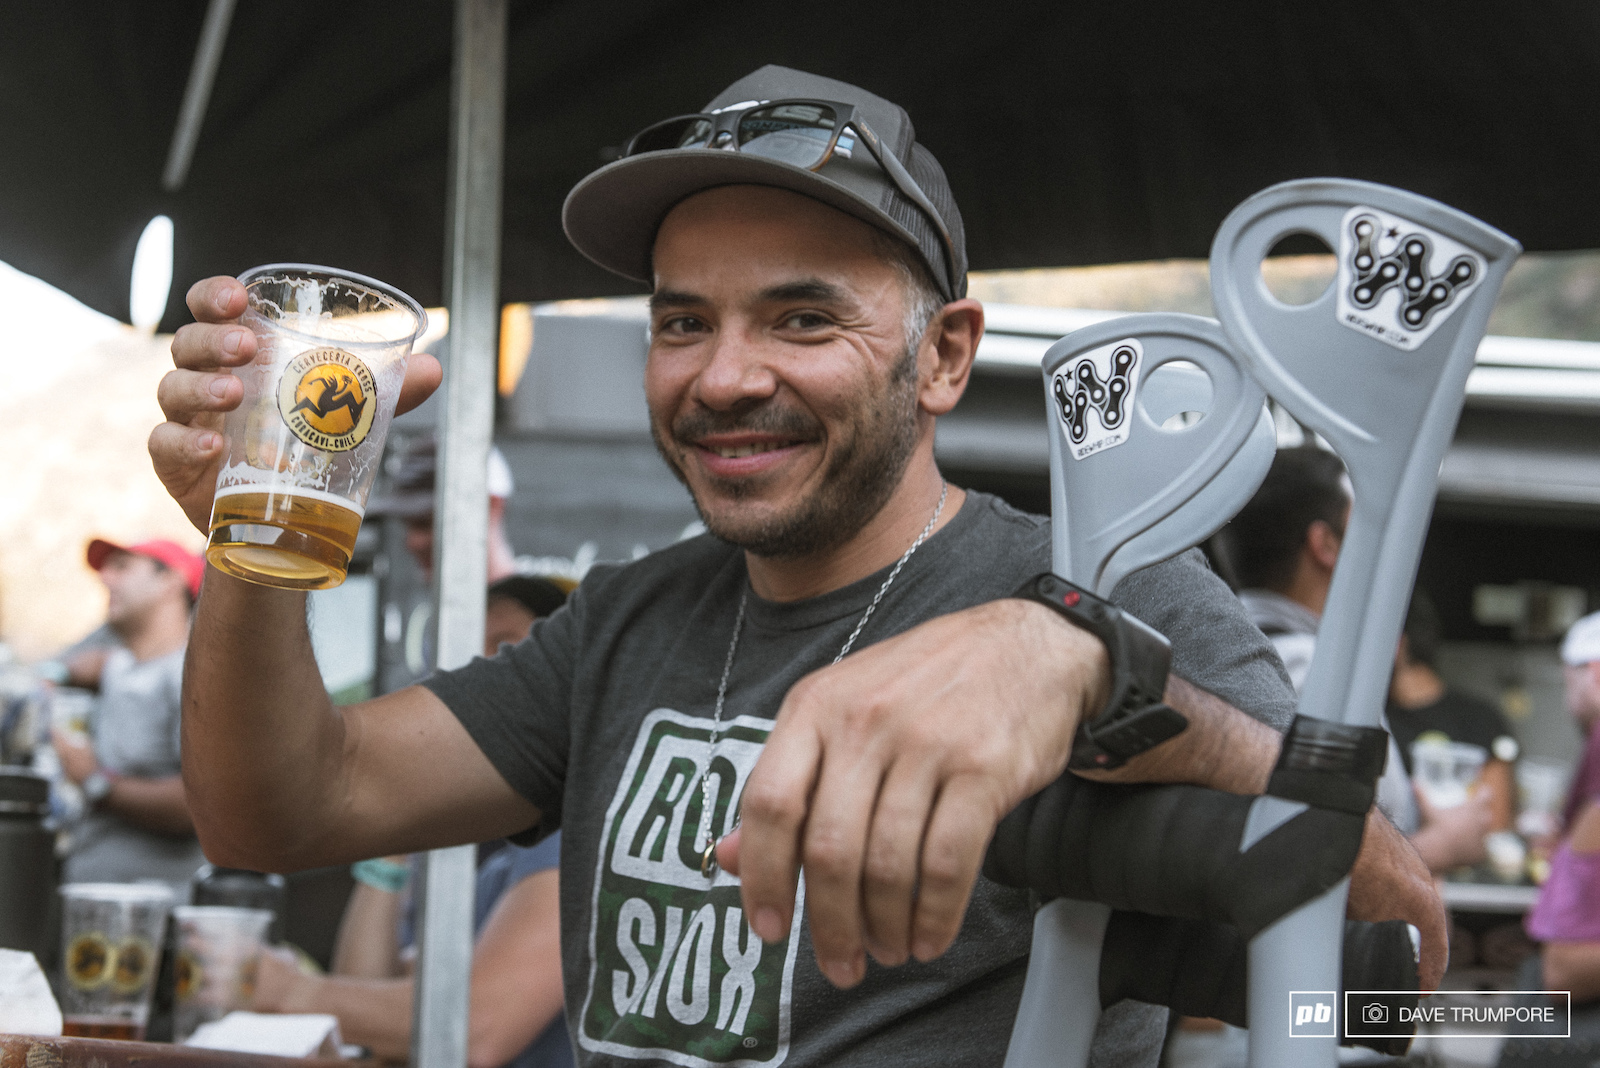 Previous Master s champs and Chilean racing legend Felipe Vasquez is sitting things out this year. A broken ankle may be keeping him off the bike but he still has two free hands for each day s afterparty.